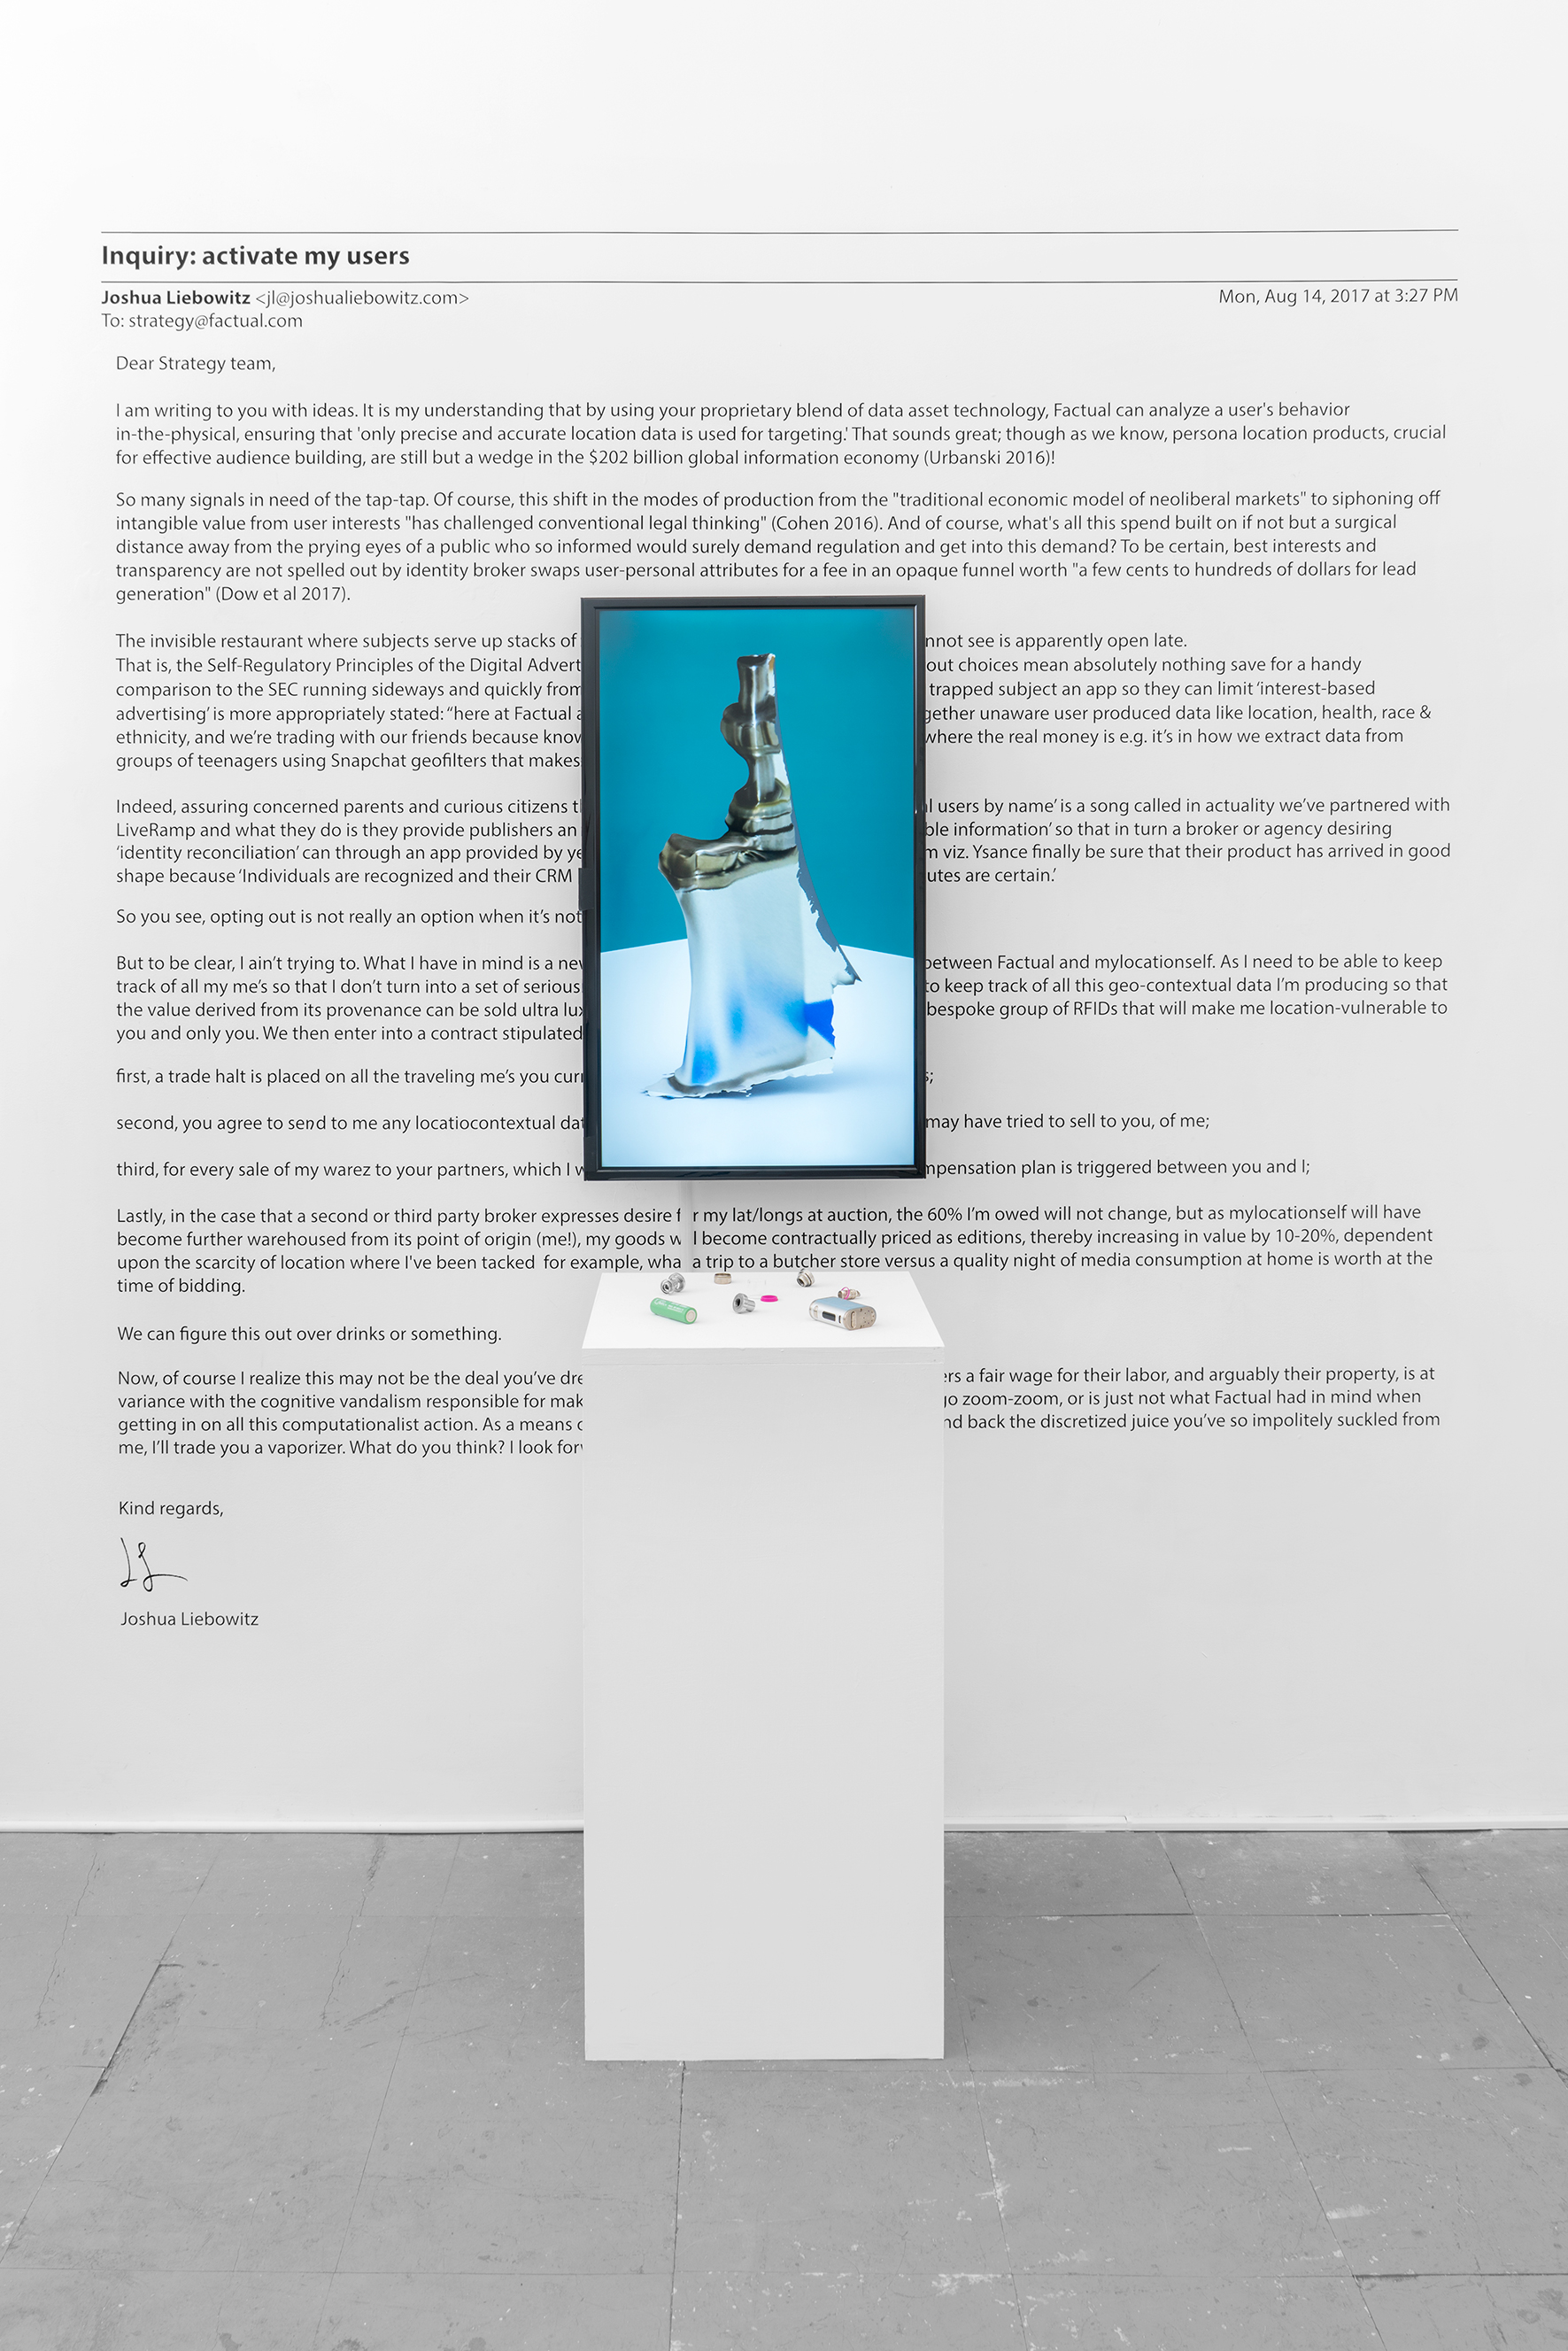 Being Consignment: A Strategy  2017 screen, vaporizer parts, text 17 x 29 x 3 inches, parts and text variable